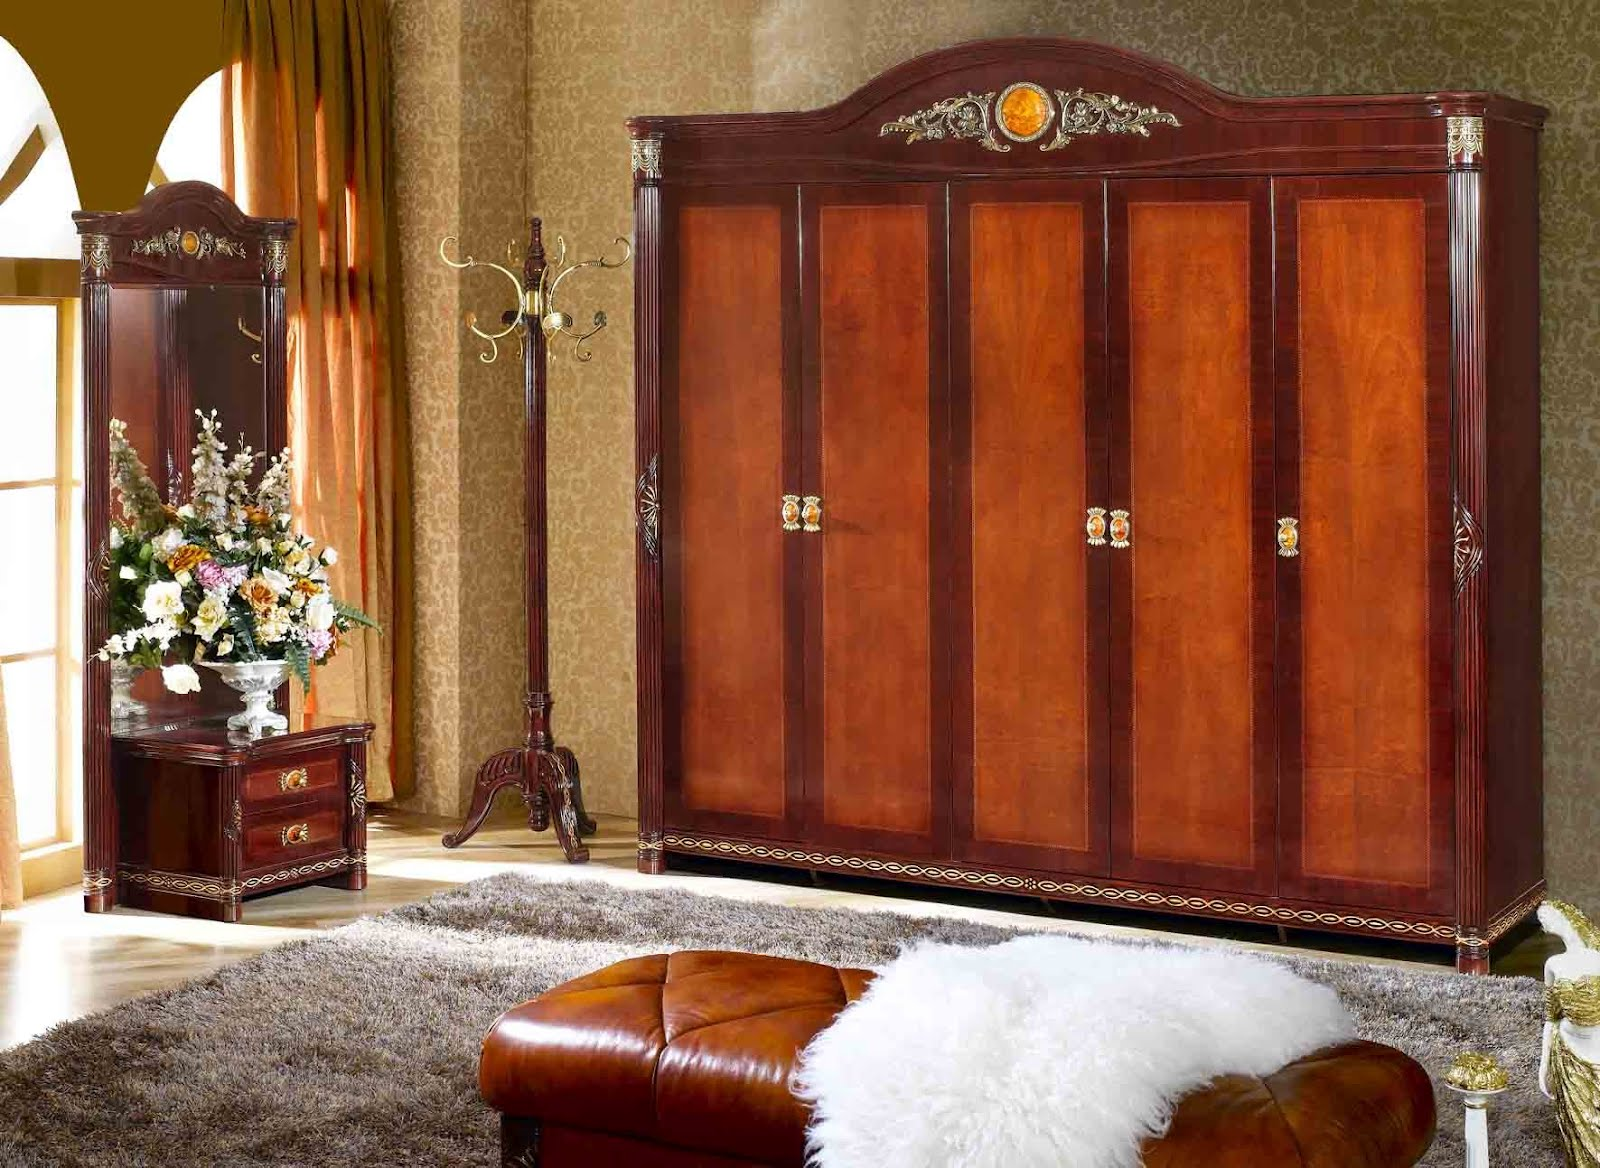 Other Home Furnitures Bangalore Furniture Manufacturers: Wood Furniture Manufacturers: Wooden Wardrobe